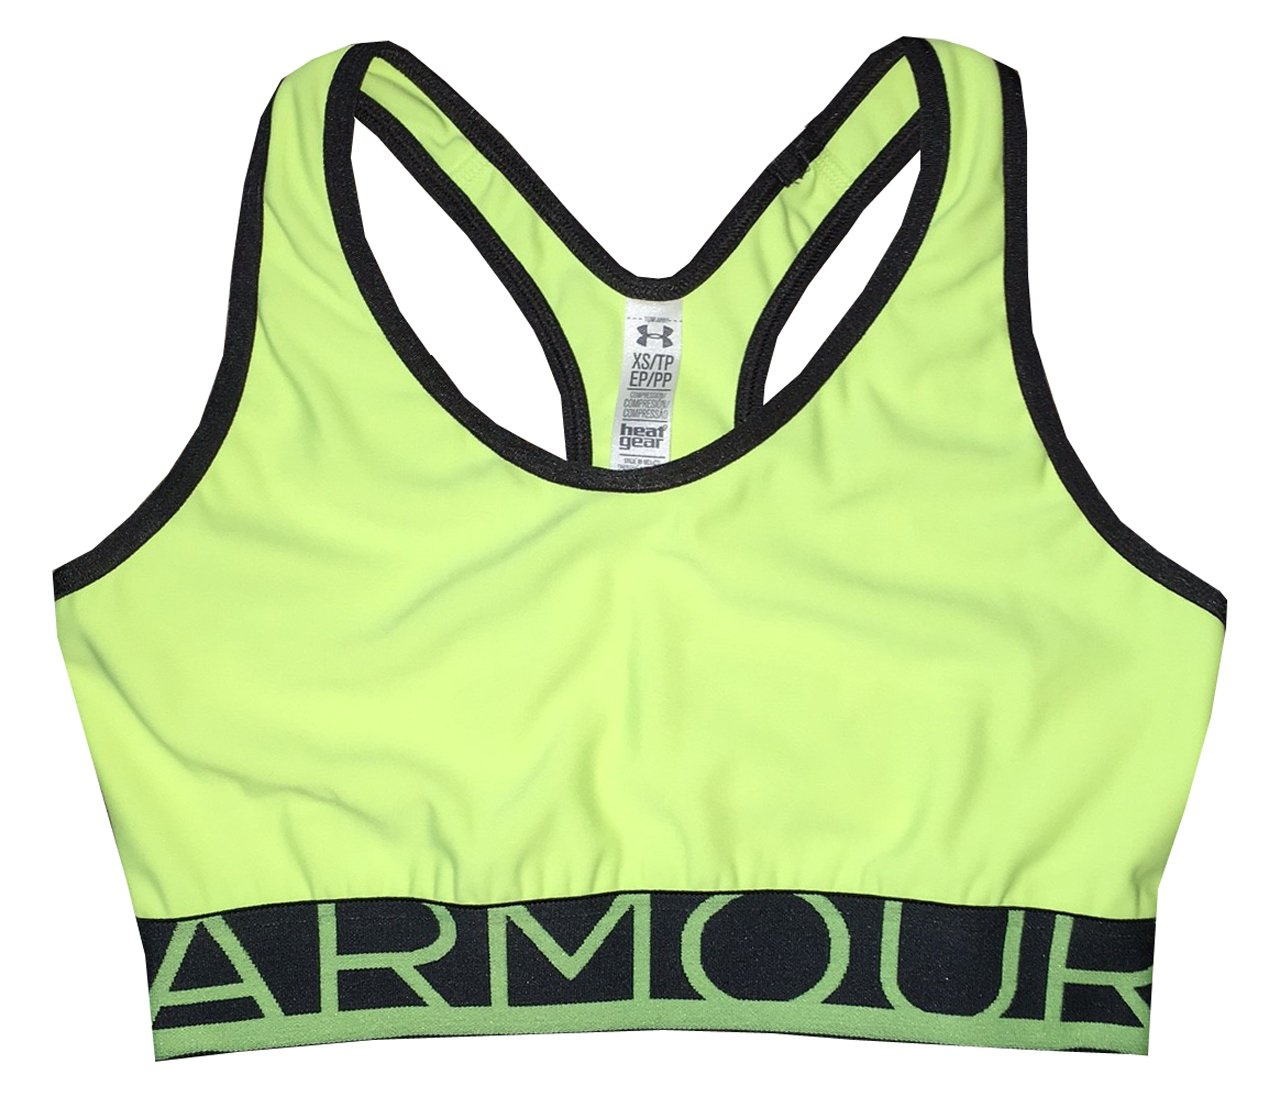 Under Armour Women Mid Sport Bra (XS, High Vis yellow) by Under Armour